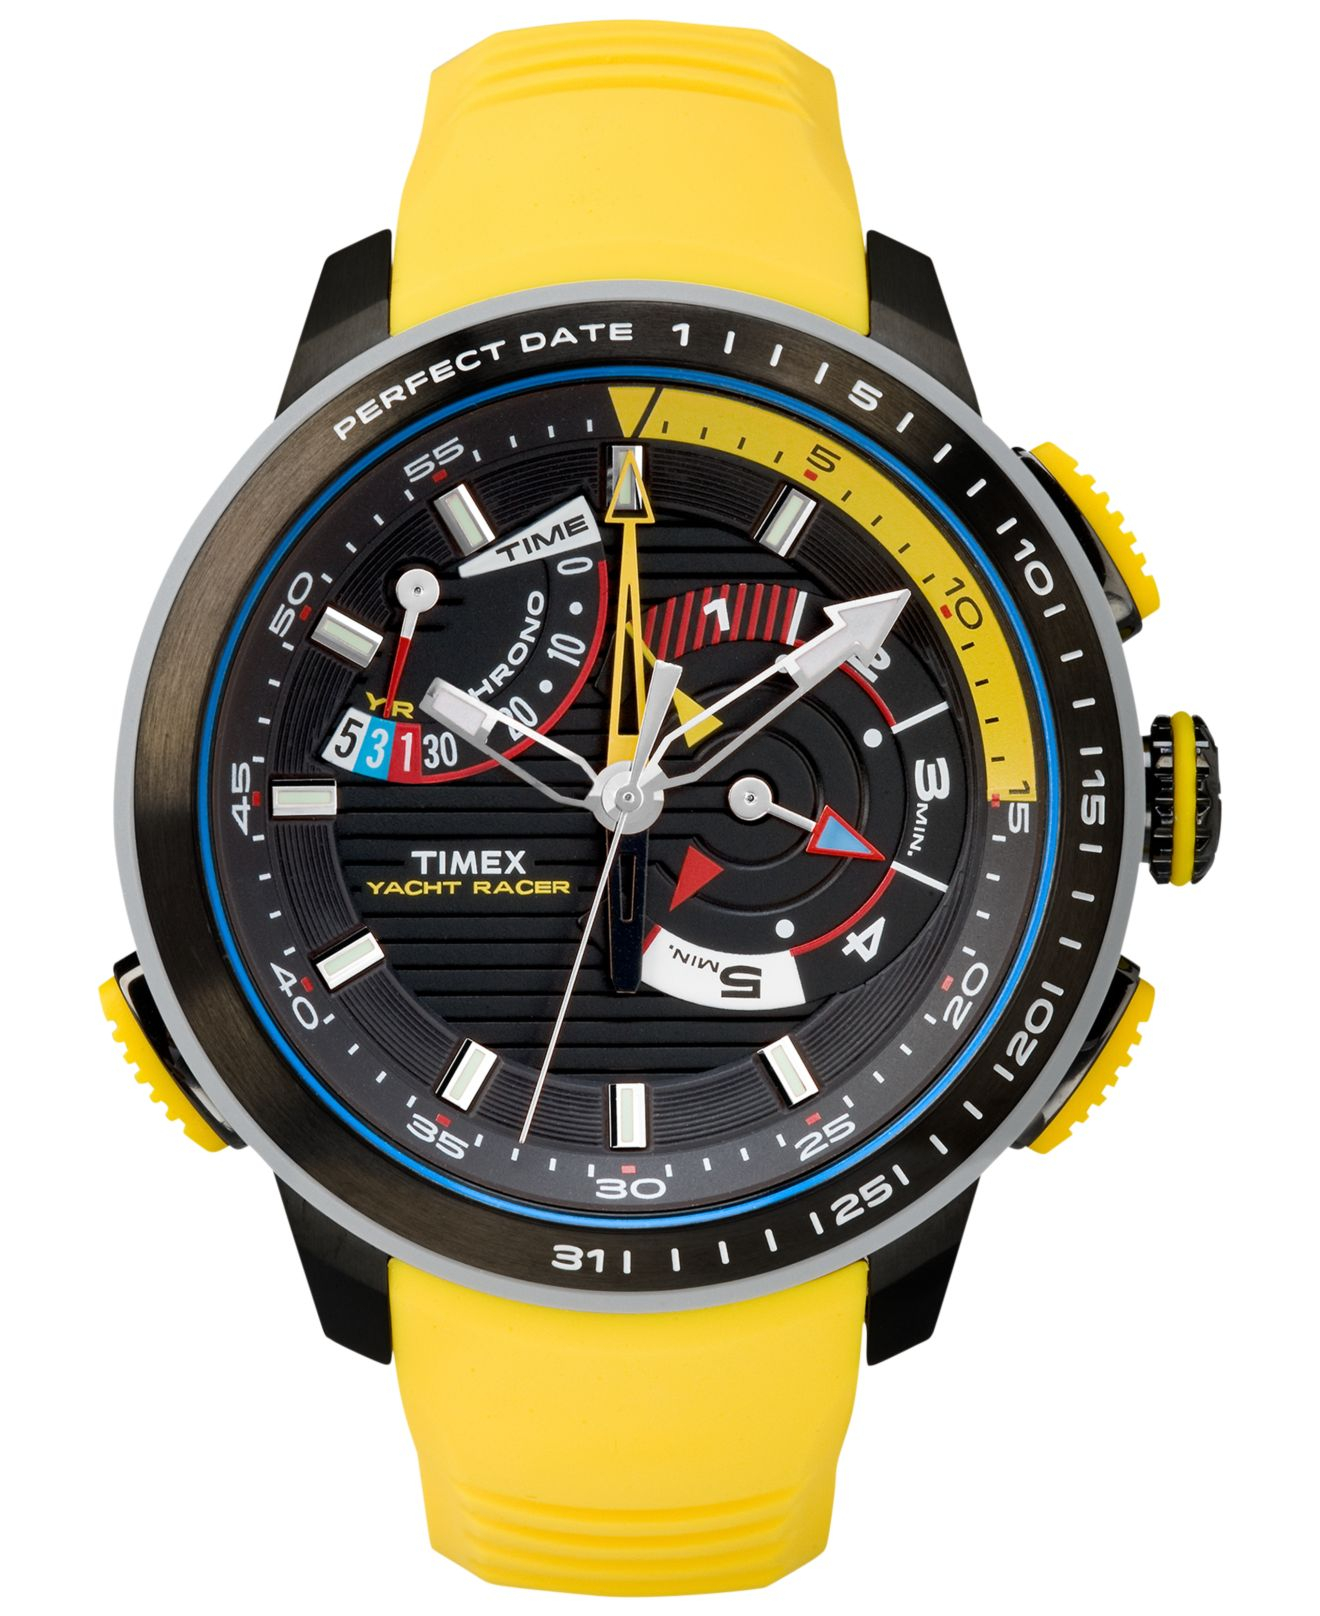 Lyst Timex Mens Chronograph Yacht Racer Yellow Silicone